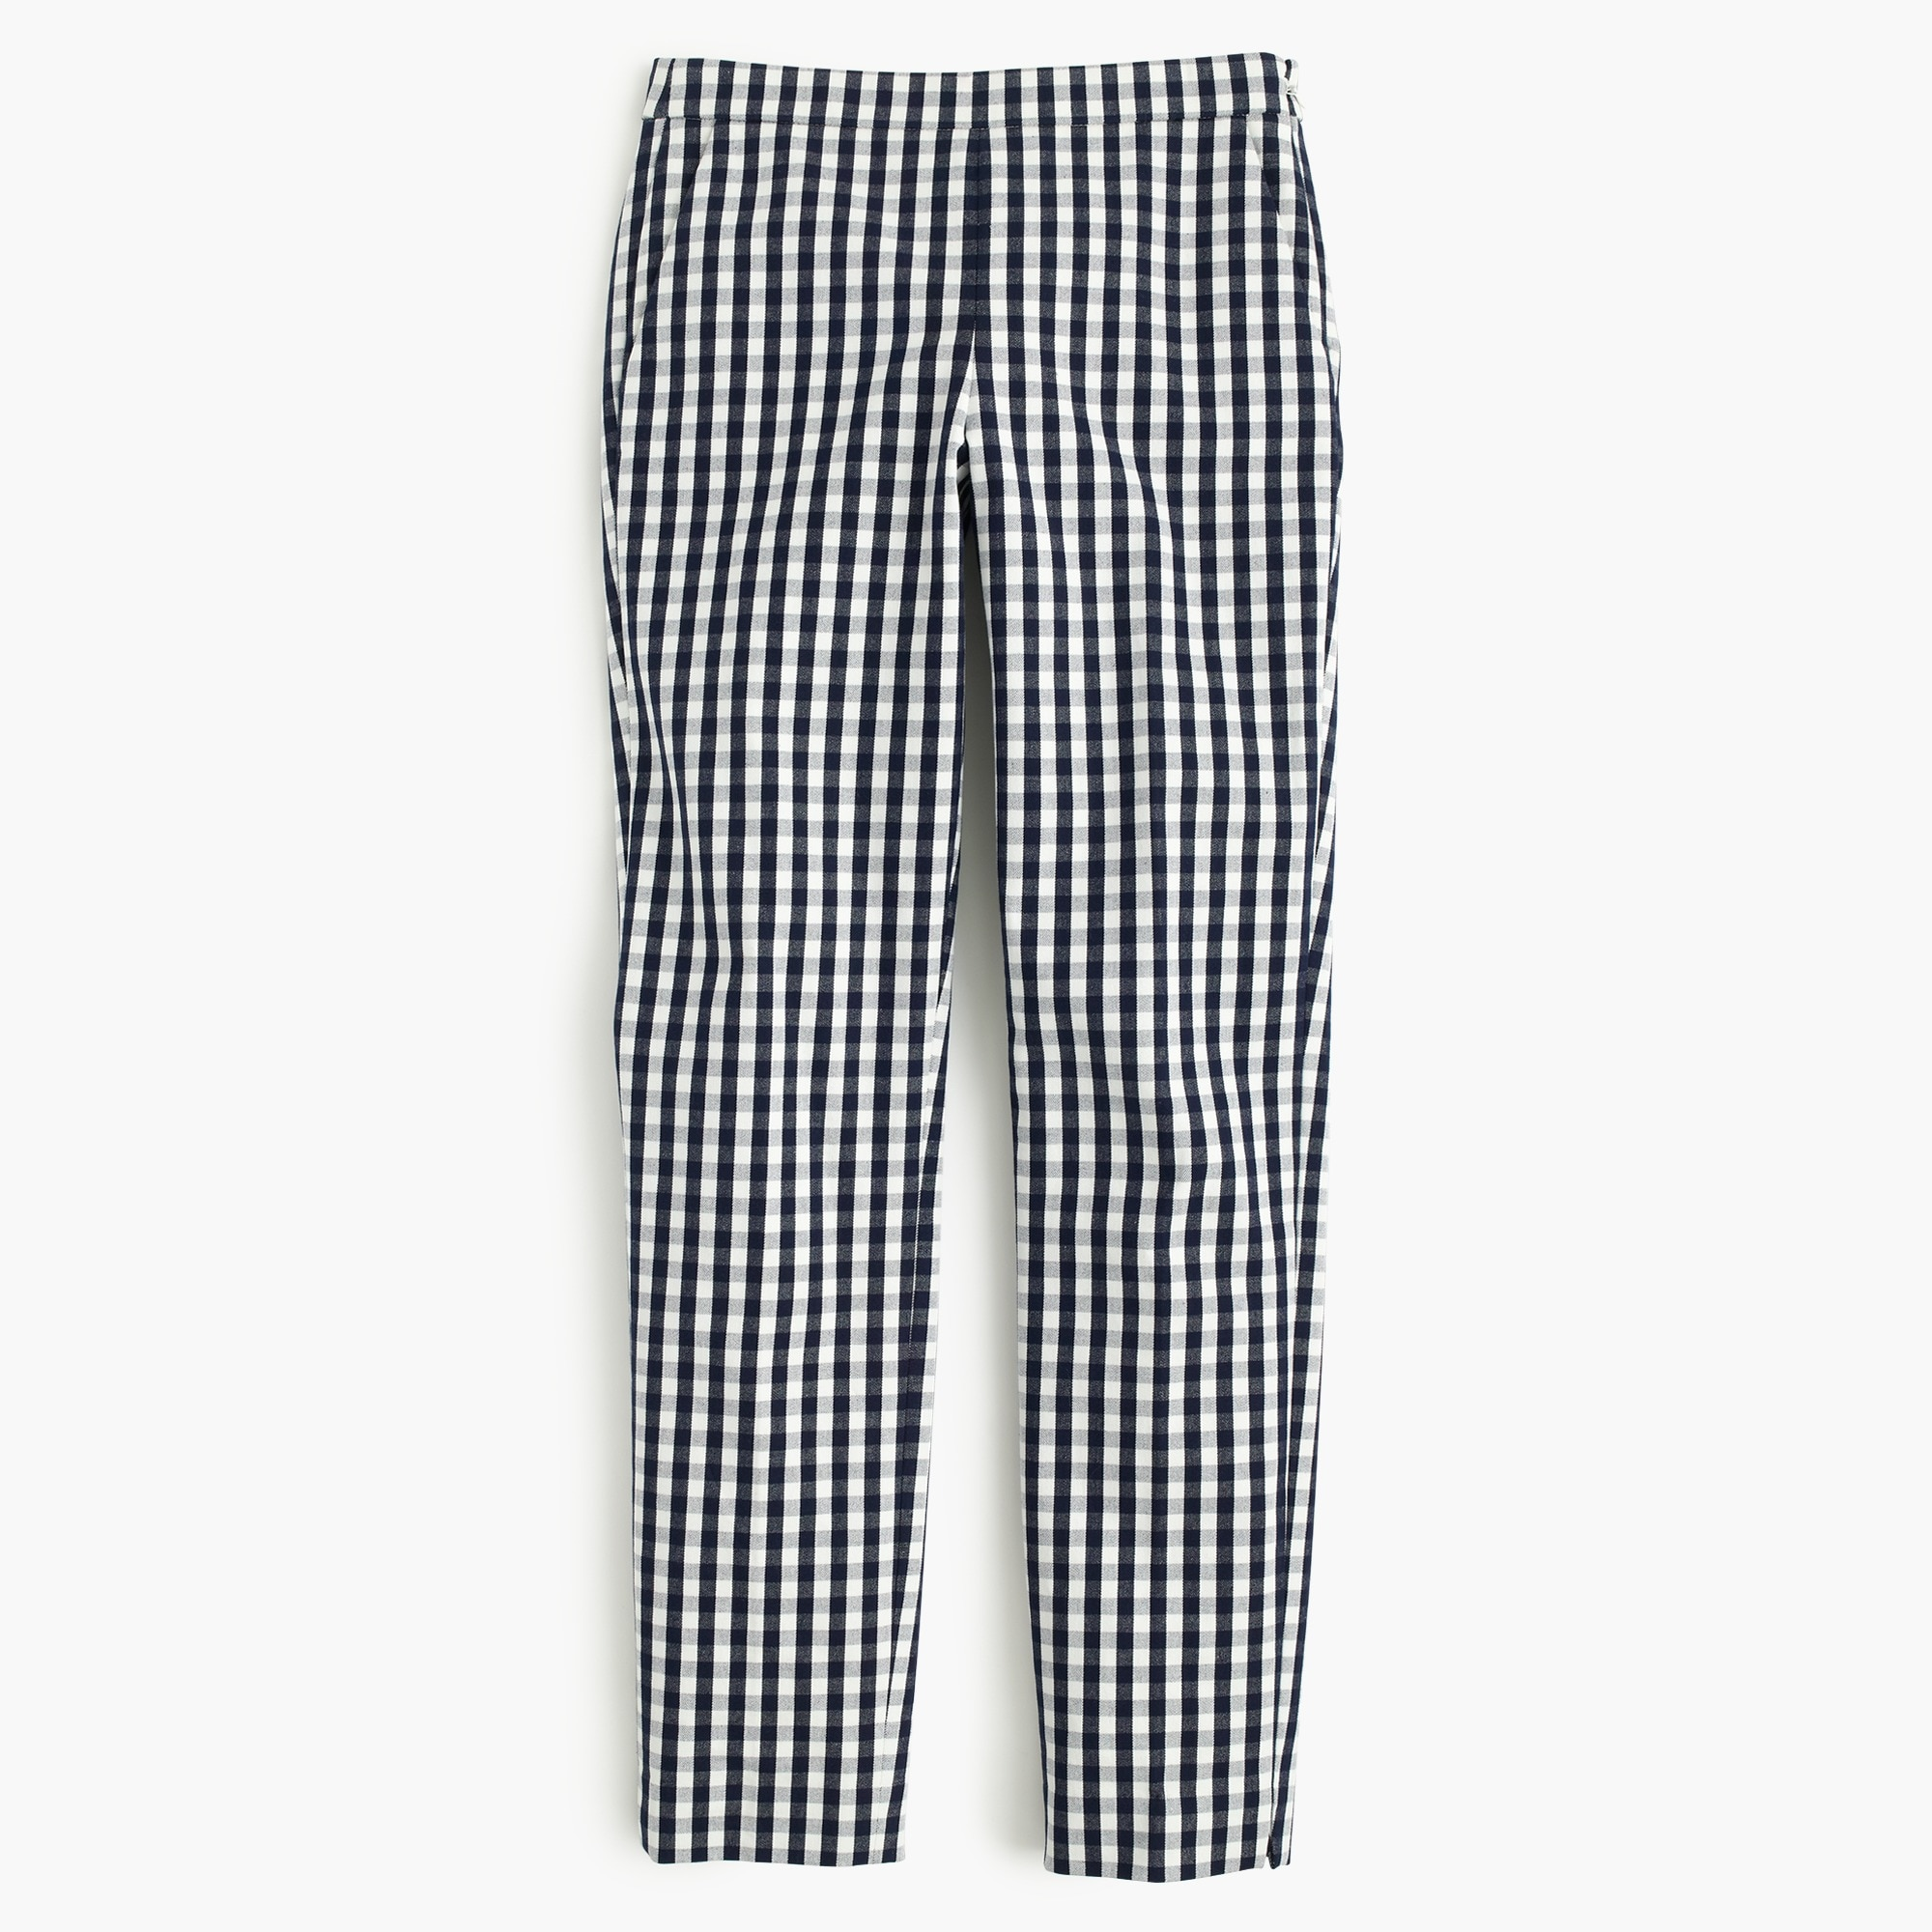 Tall Martie pant in gingham